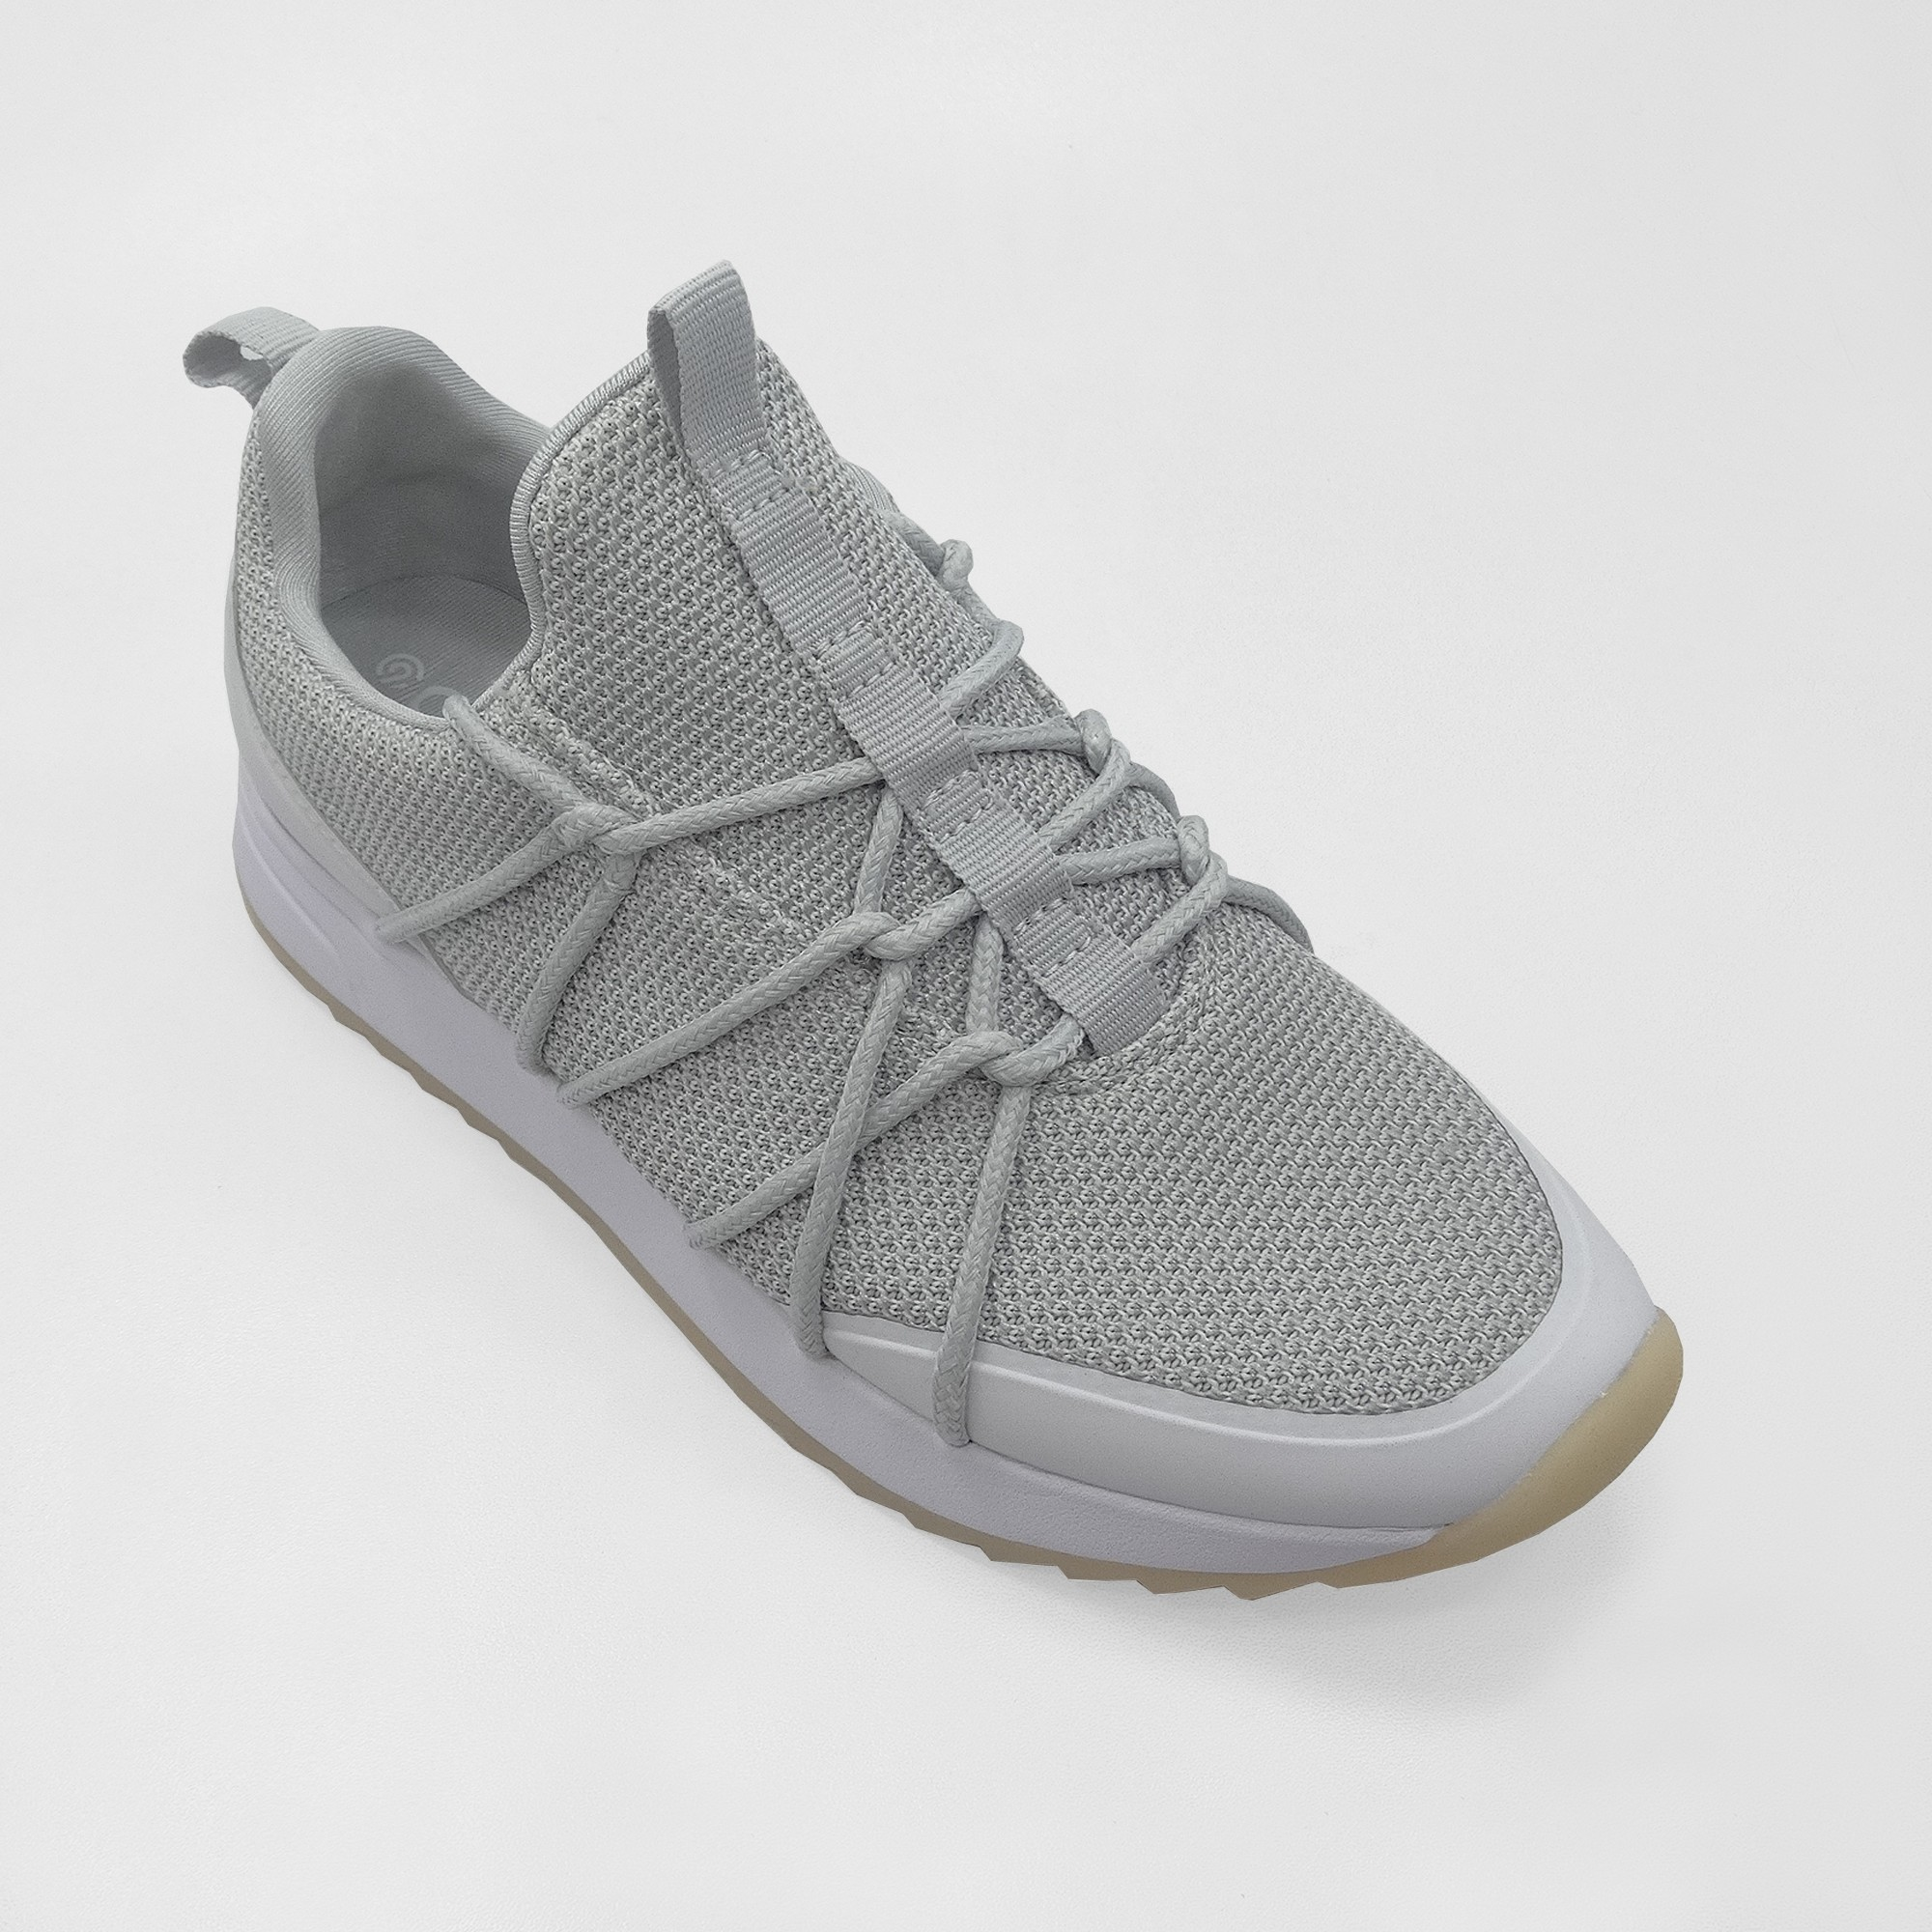 2c33fed99 Women s Interval Mesh Sneakers - C9 Champion Gray 8.5